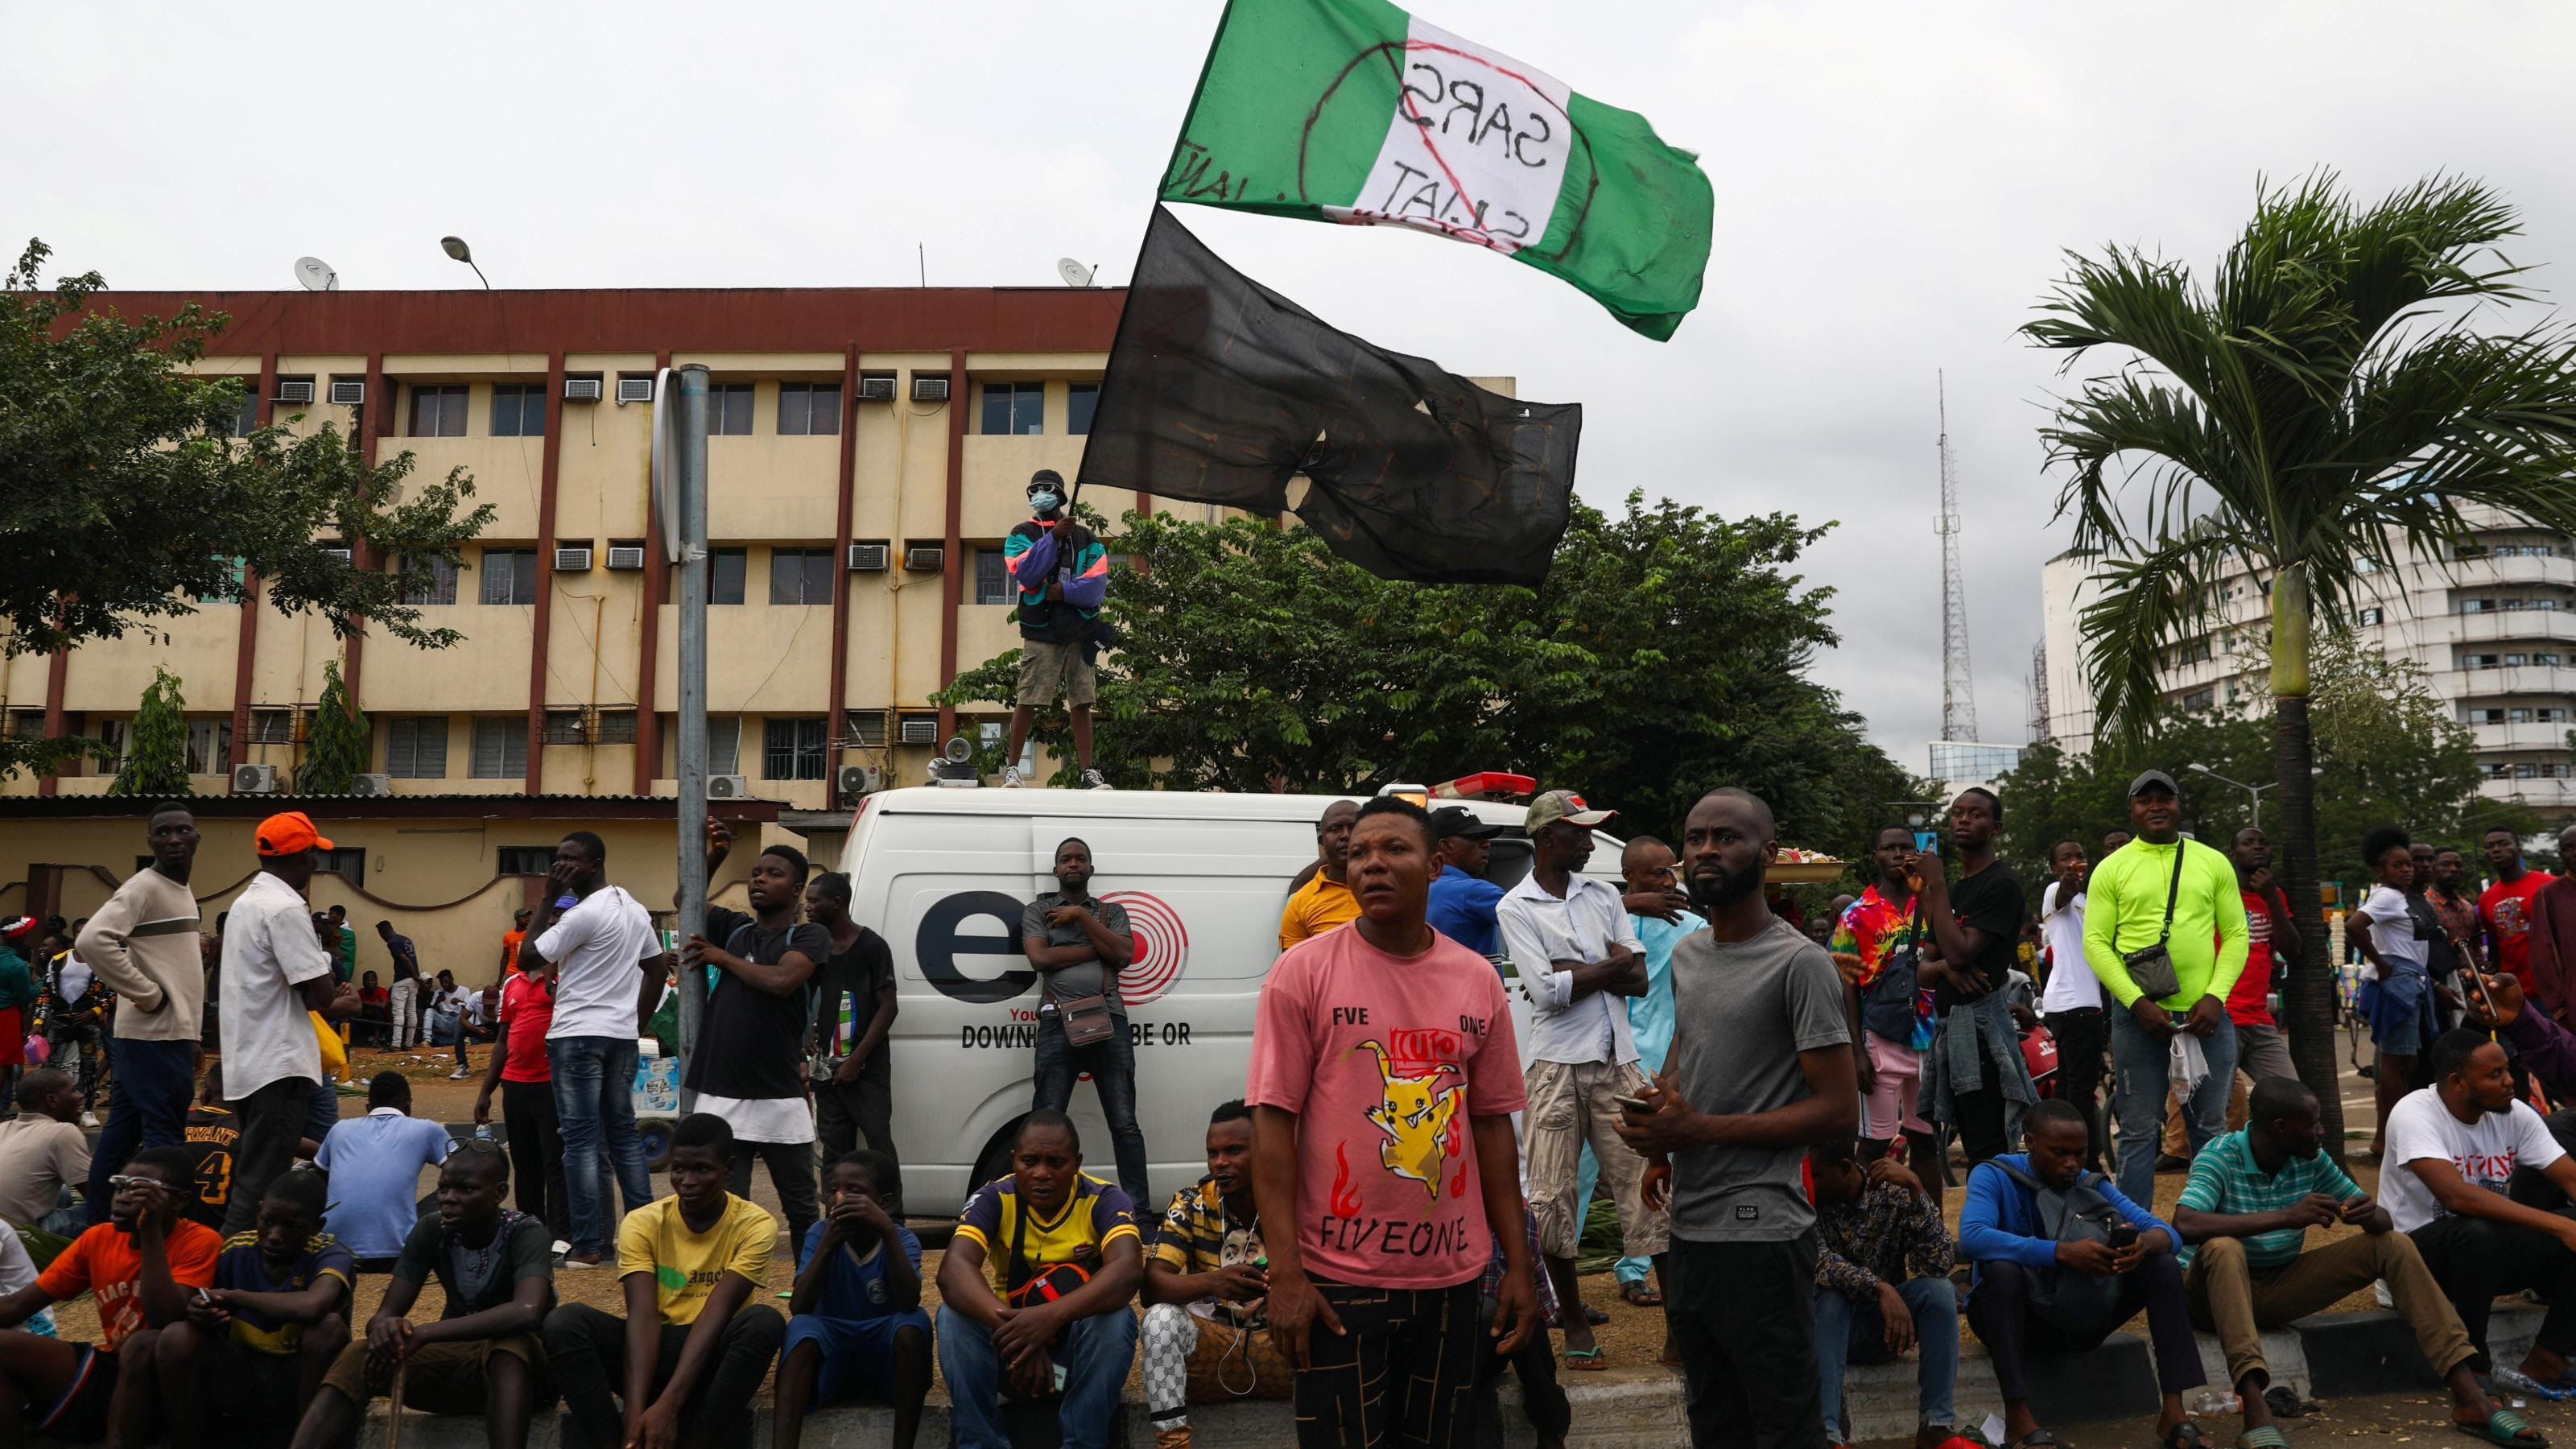 #ENDSARS Demonstrators gather in Lagos